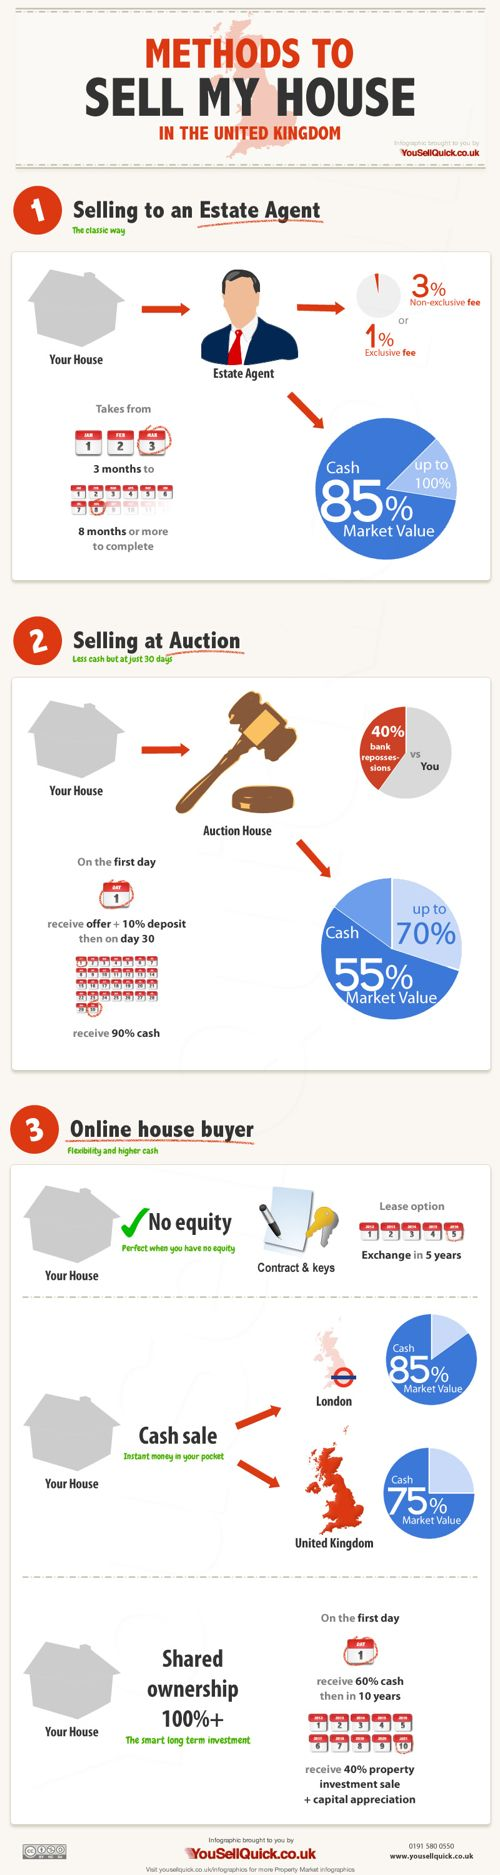 Methods To Sell My House In The Uk Infographic Sell My House Fast Sell My House Things To Sell